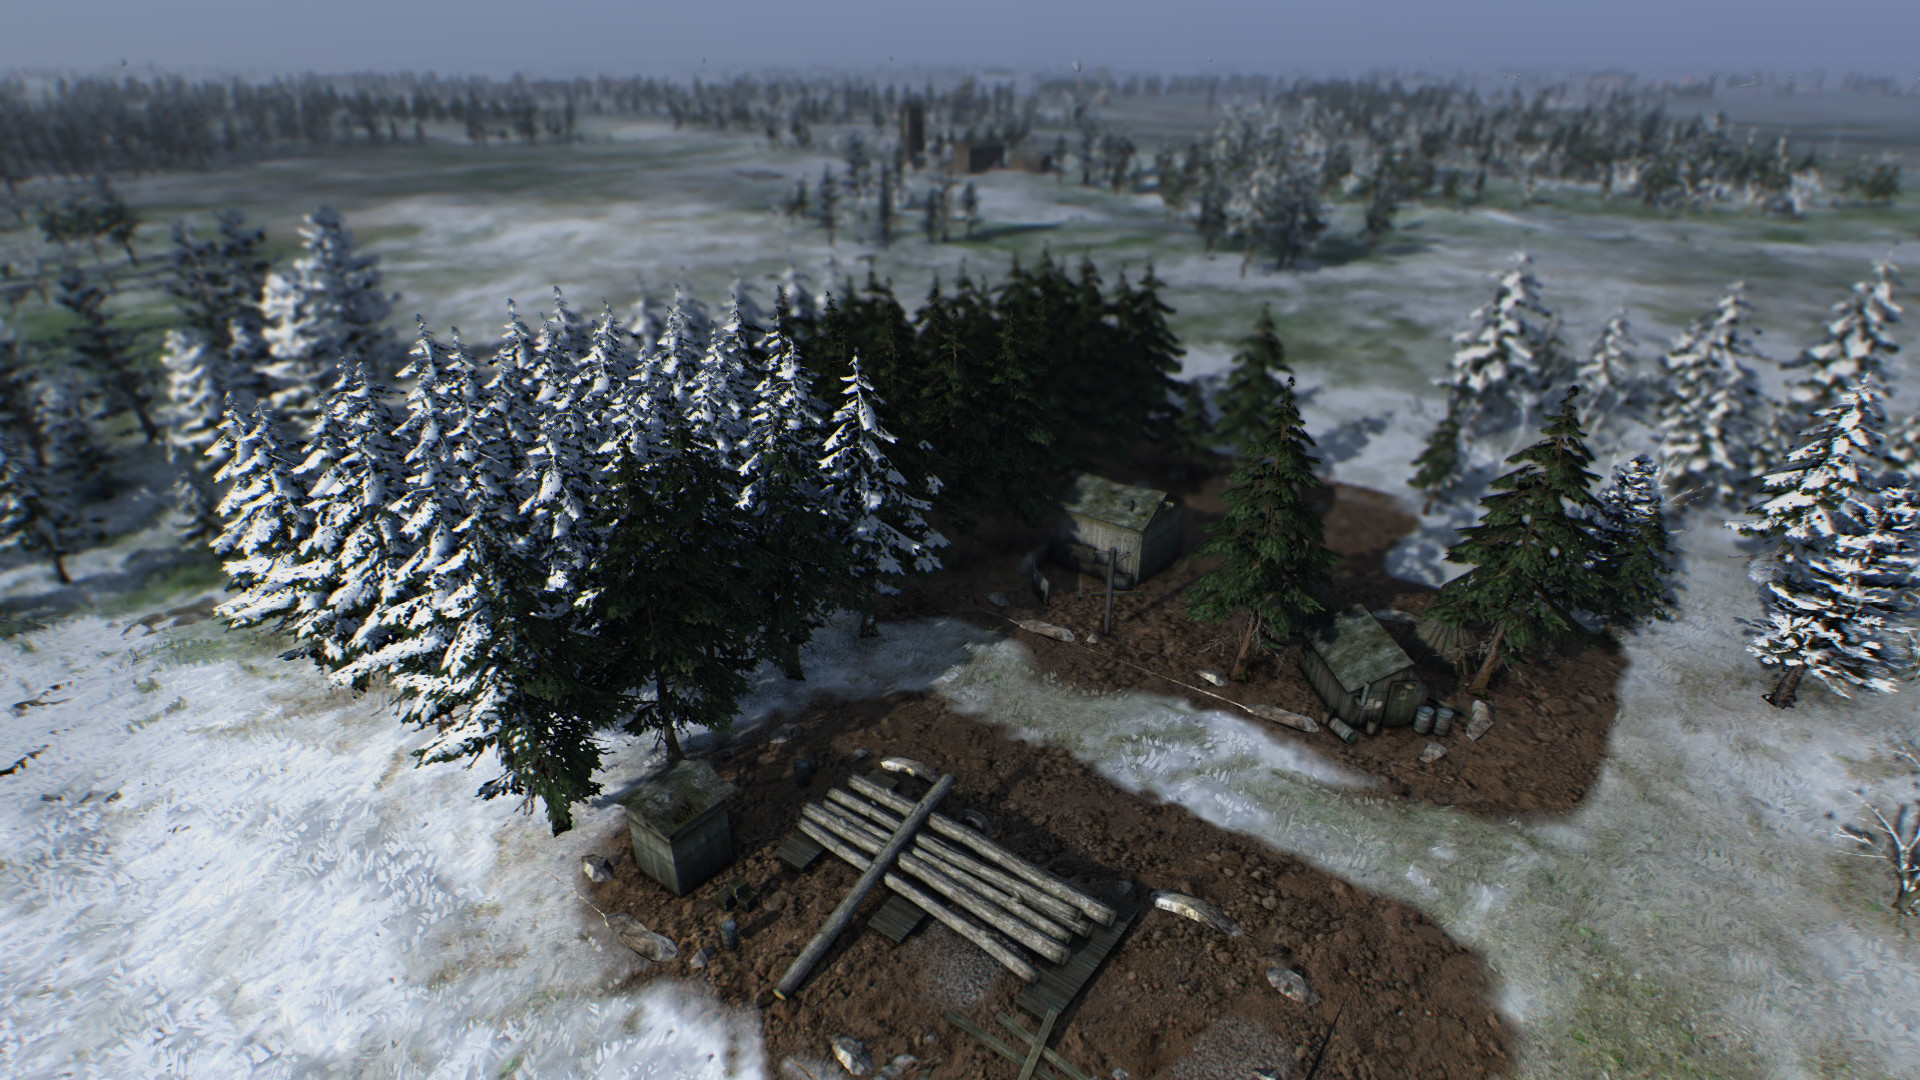 Mashinky - screenshot 16